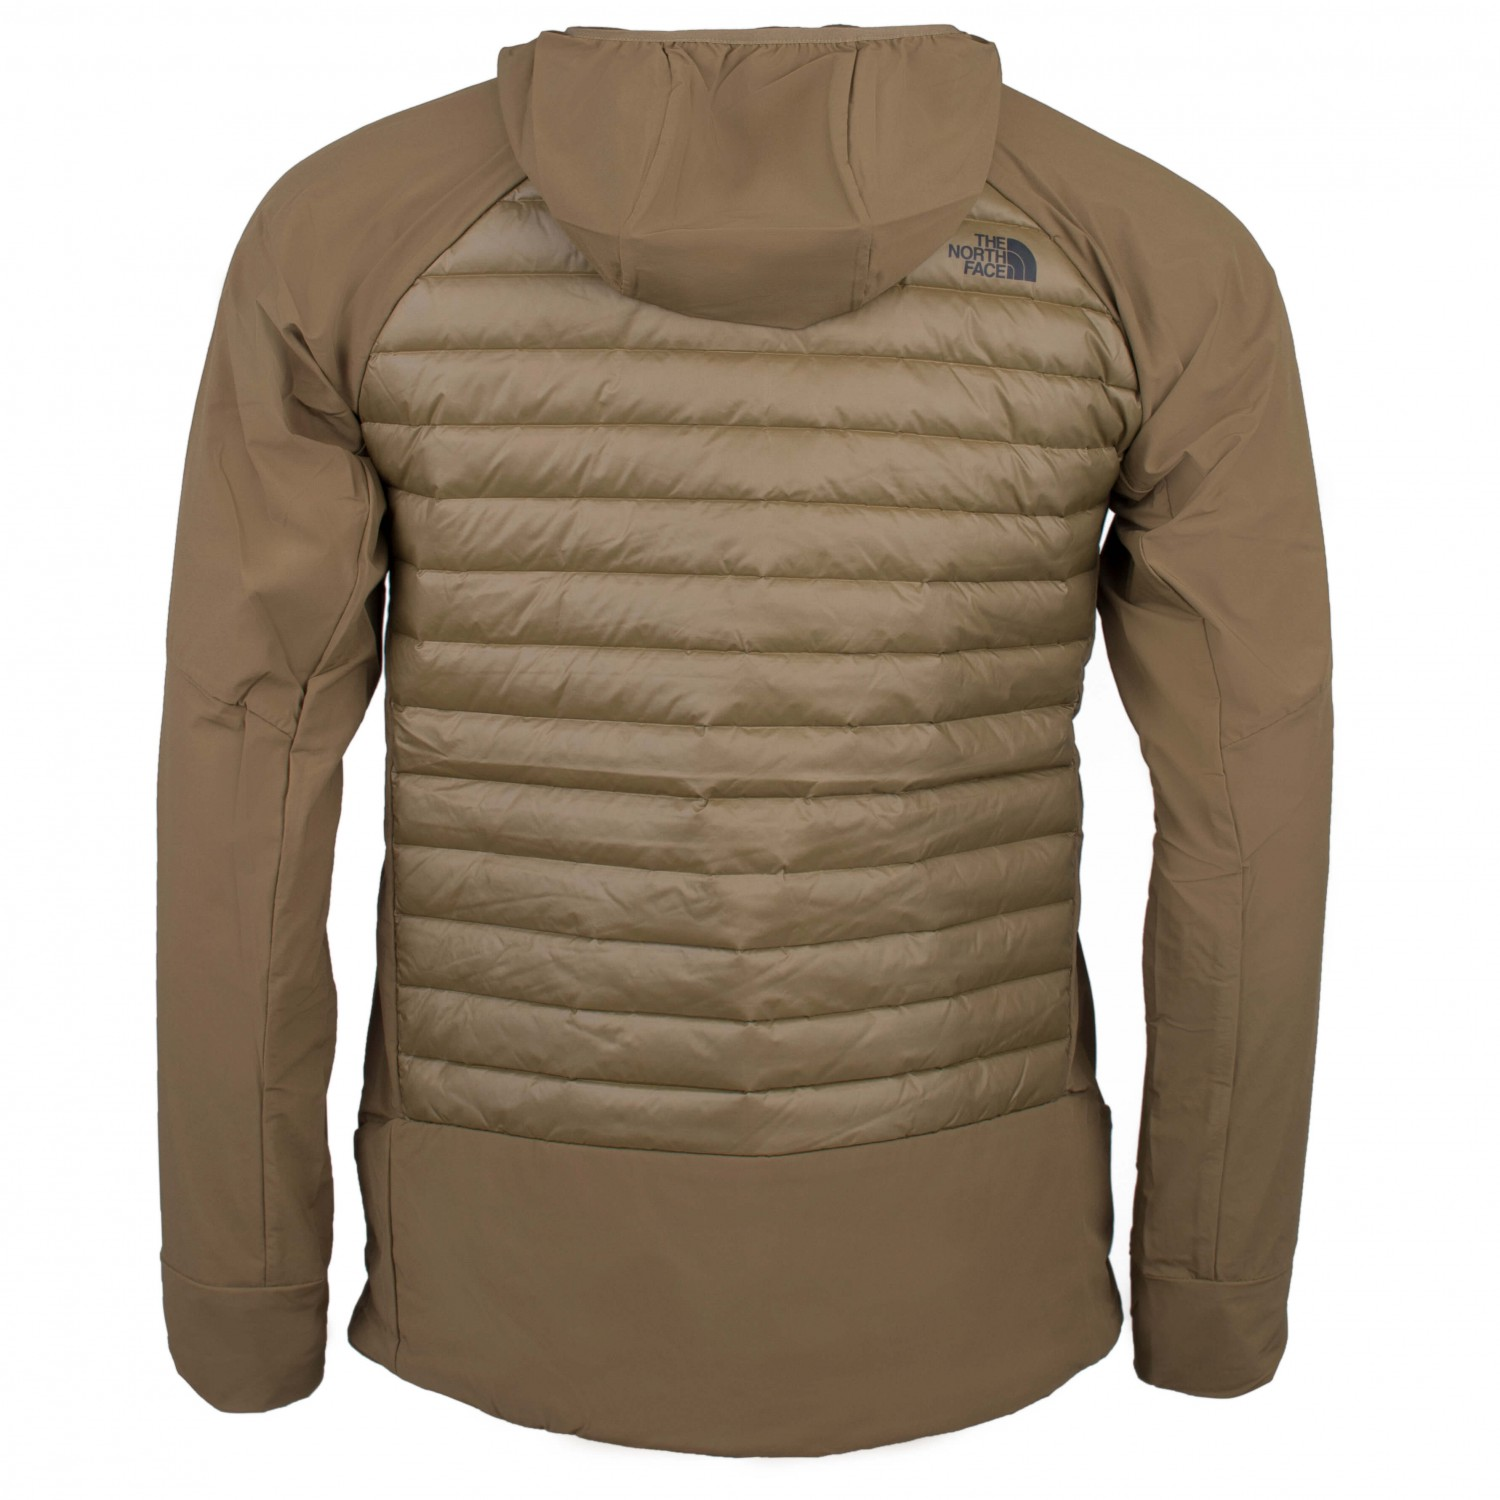 purchase the north face unlimited hooded down jacket mens